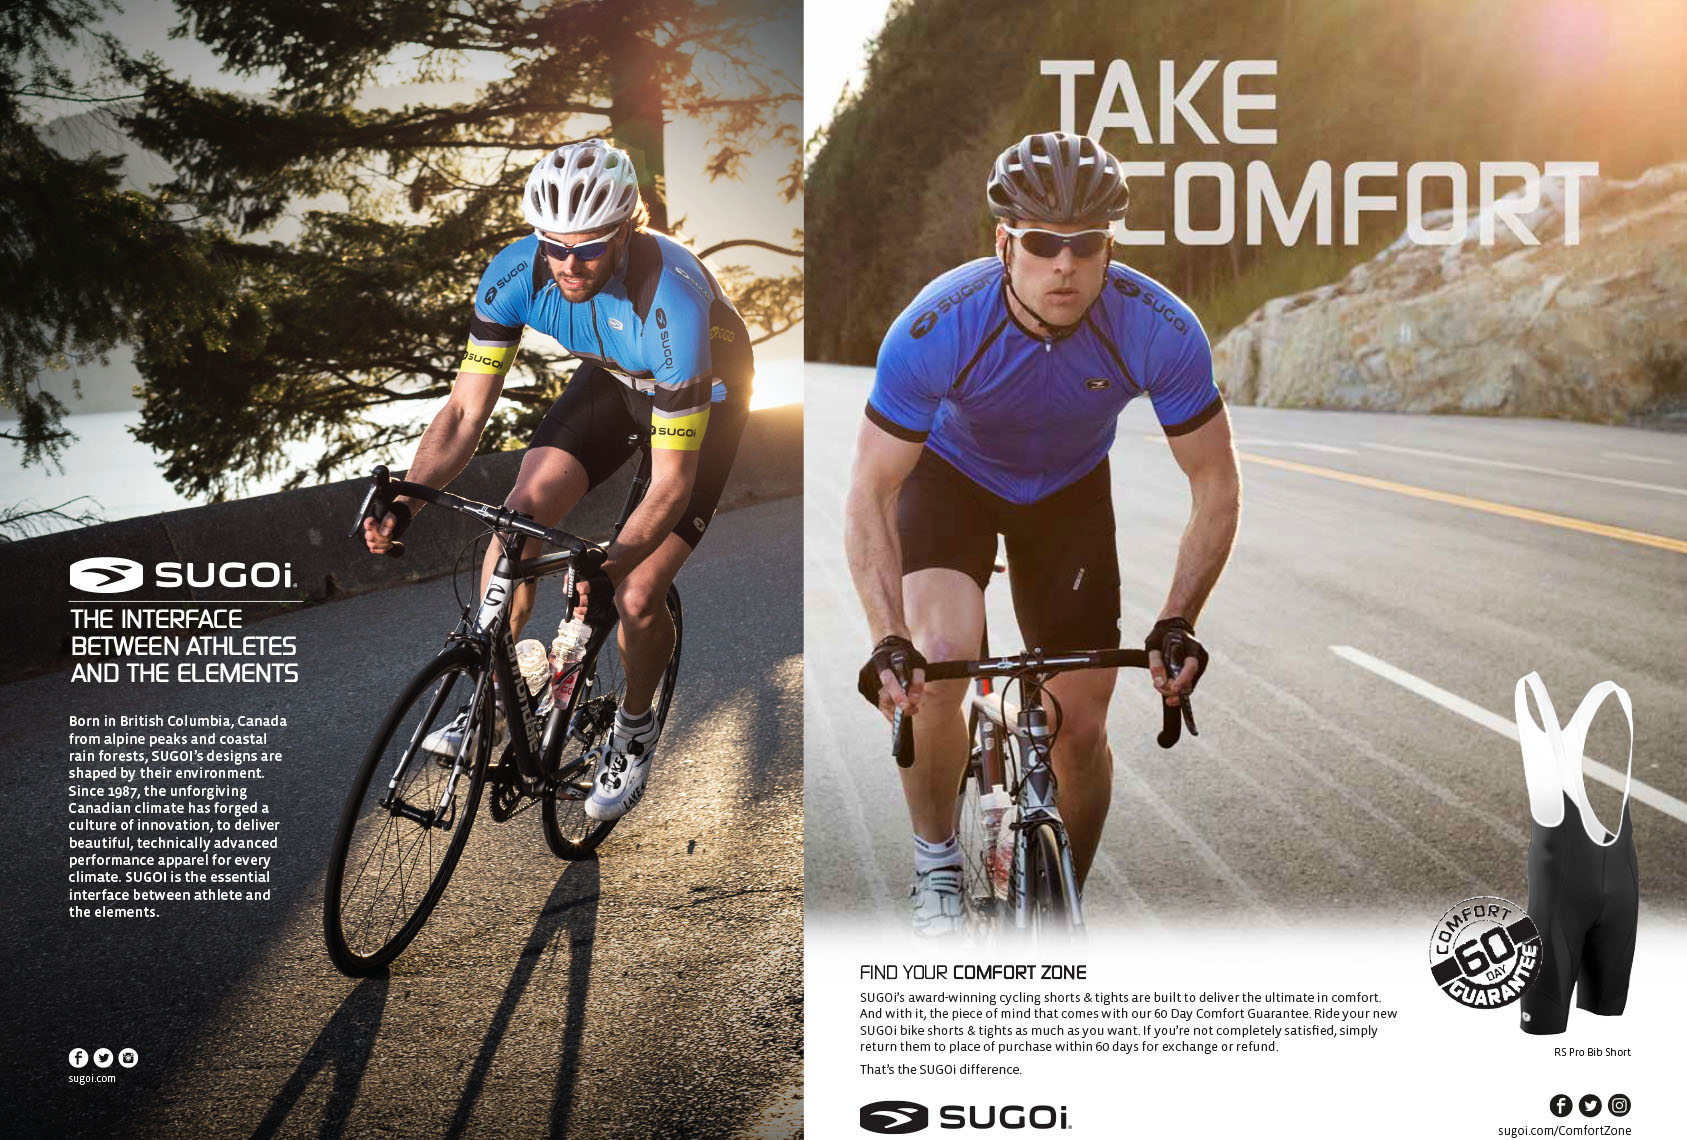 Sugoi Road Bike Apparel - Robin O